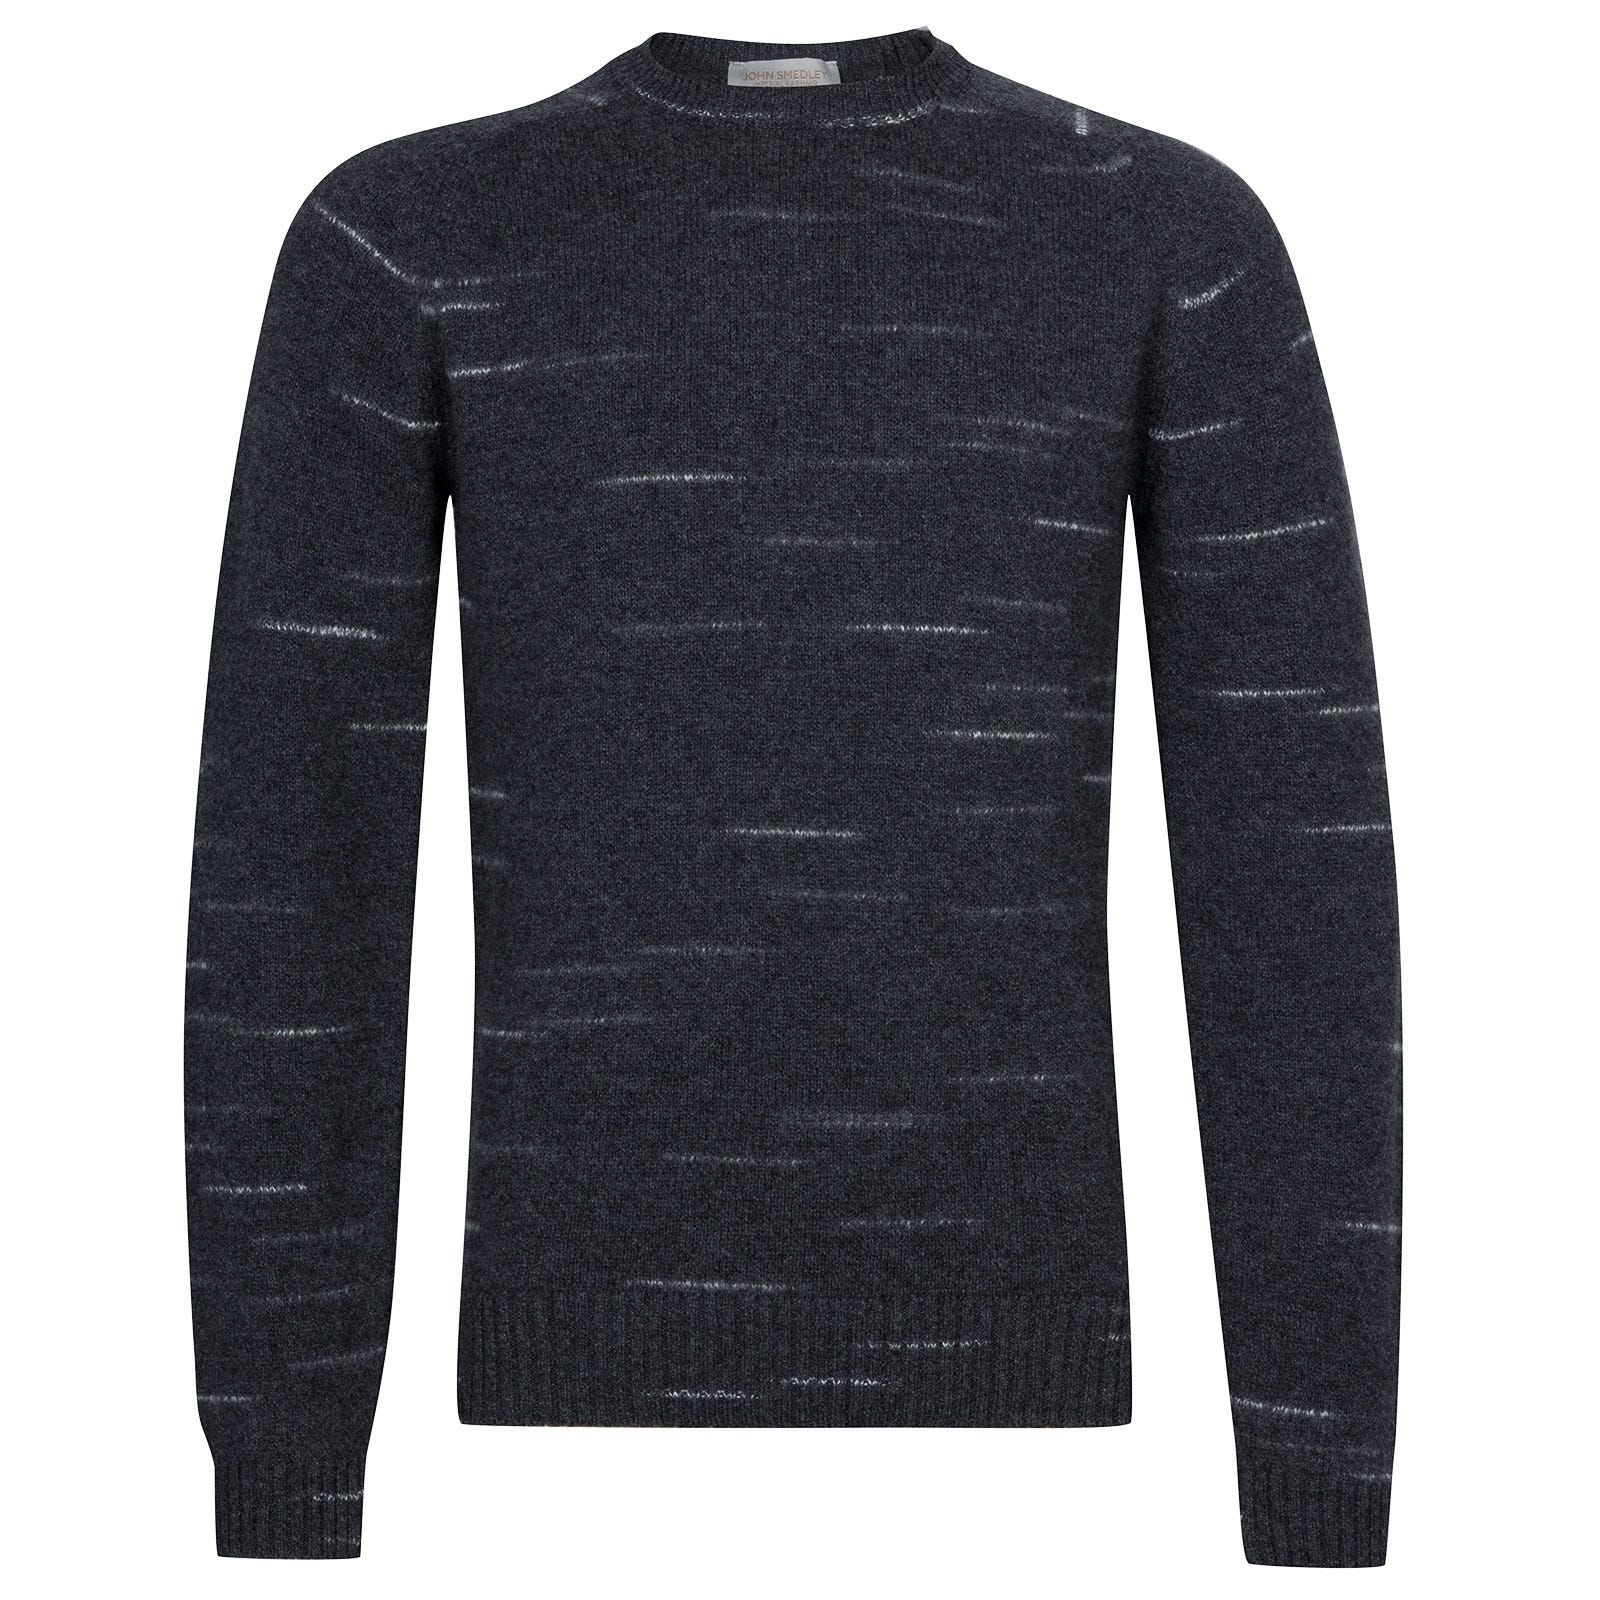 John Smedley Energy Viscose Blend Pullover In Charcoal-M